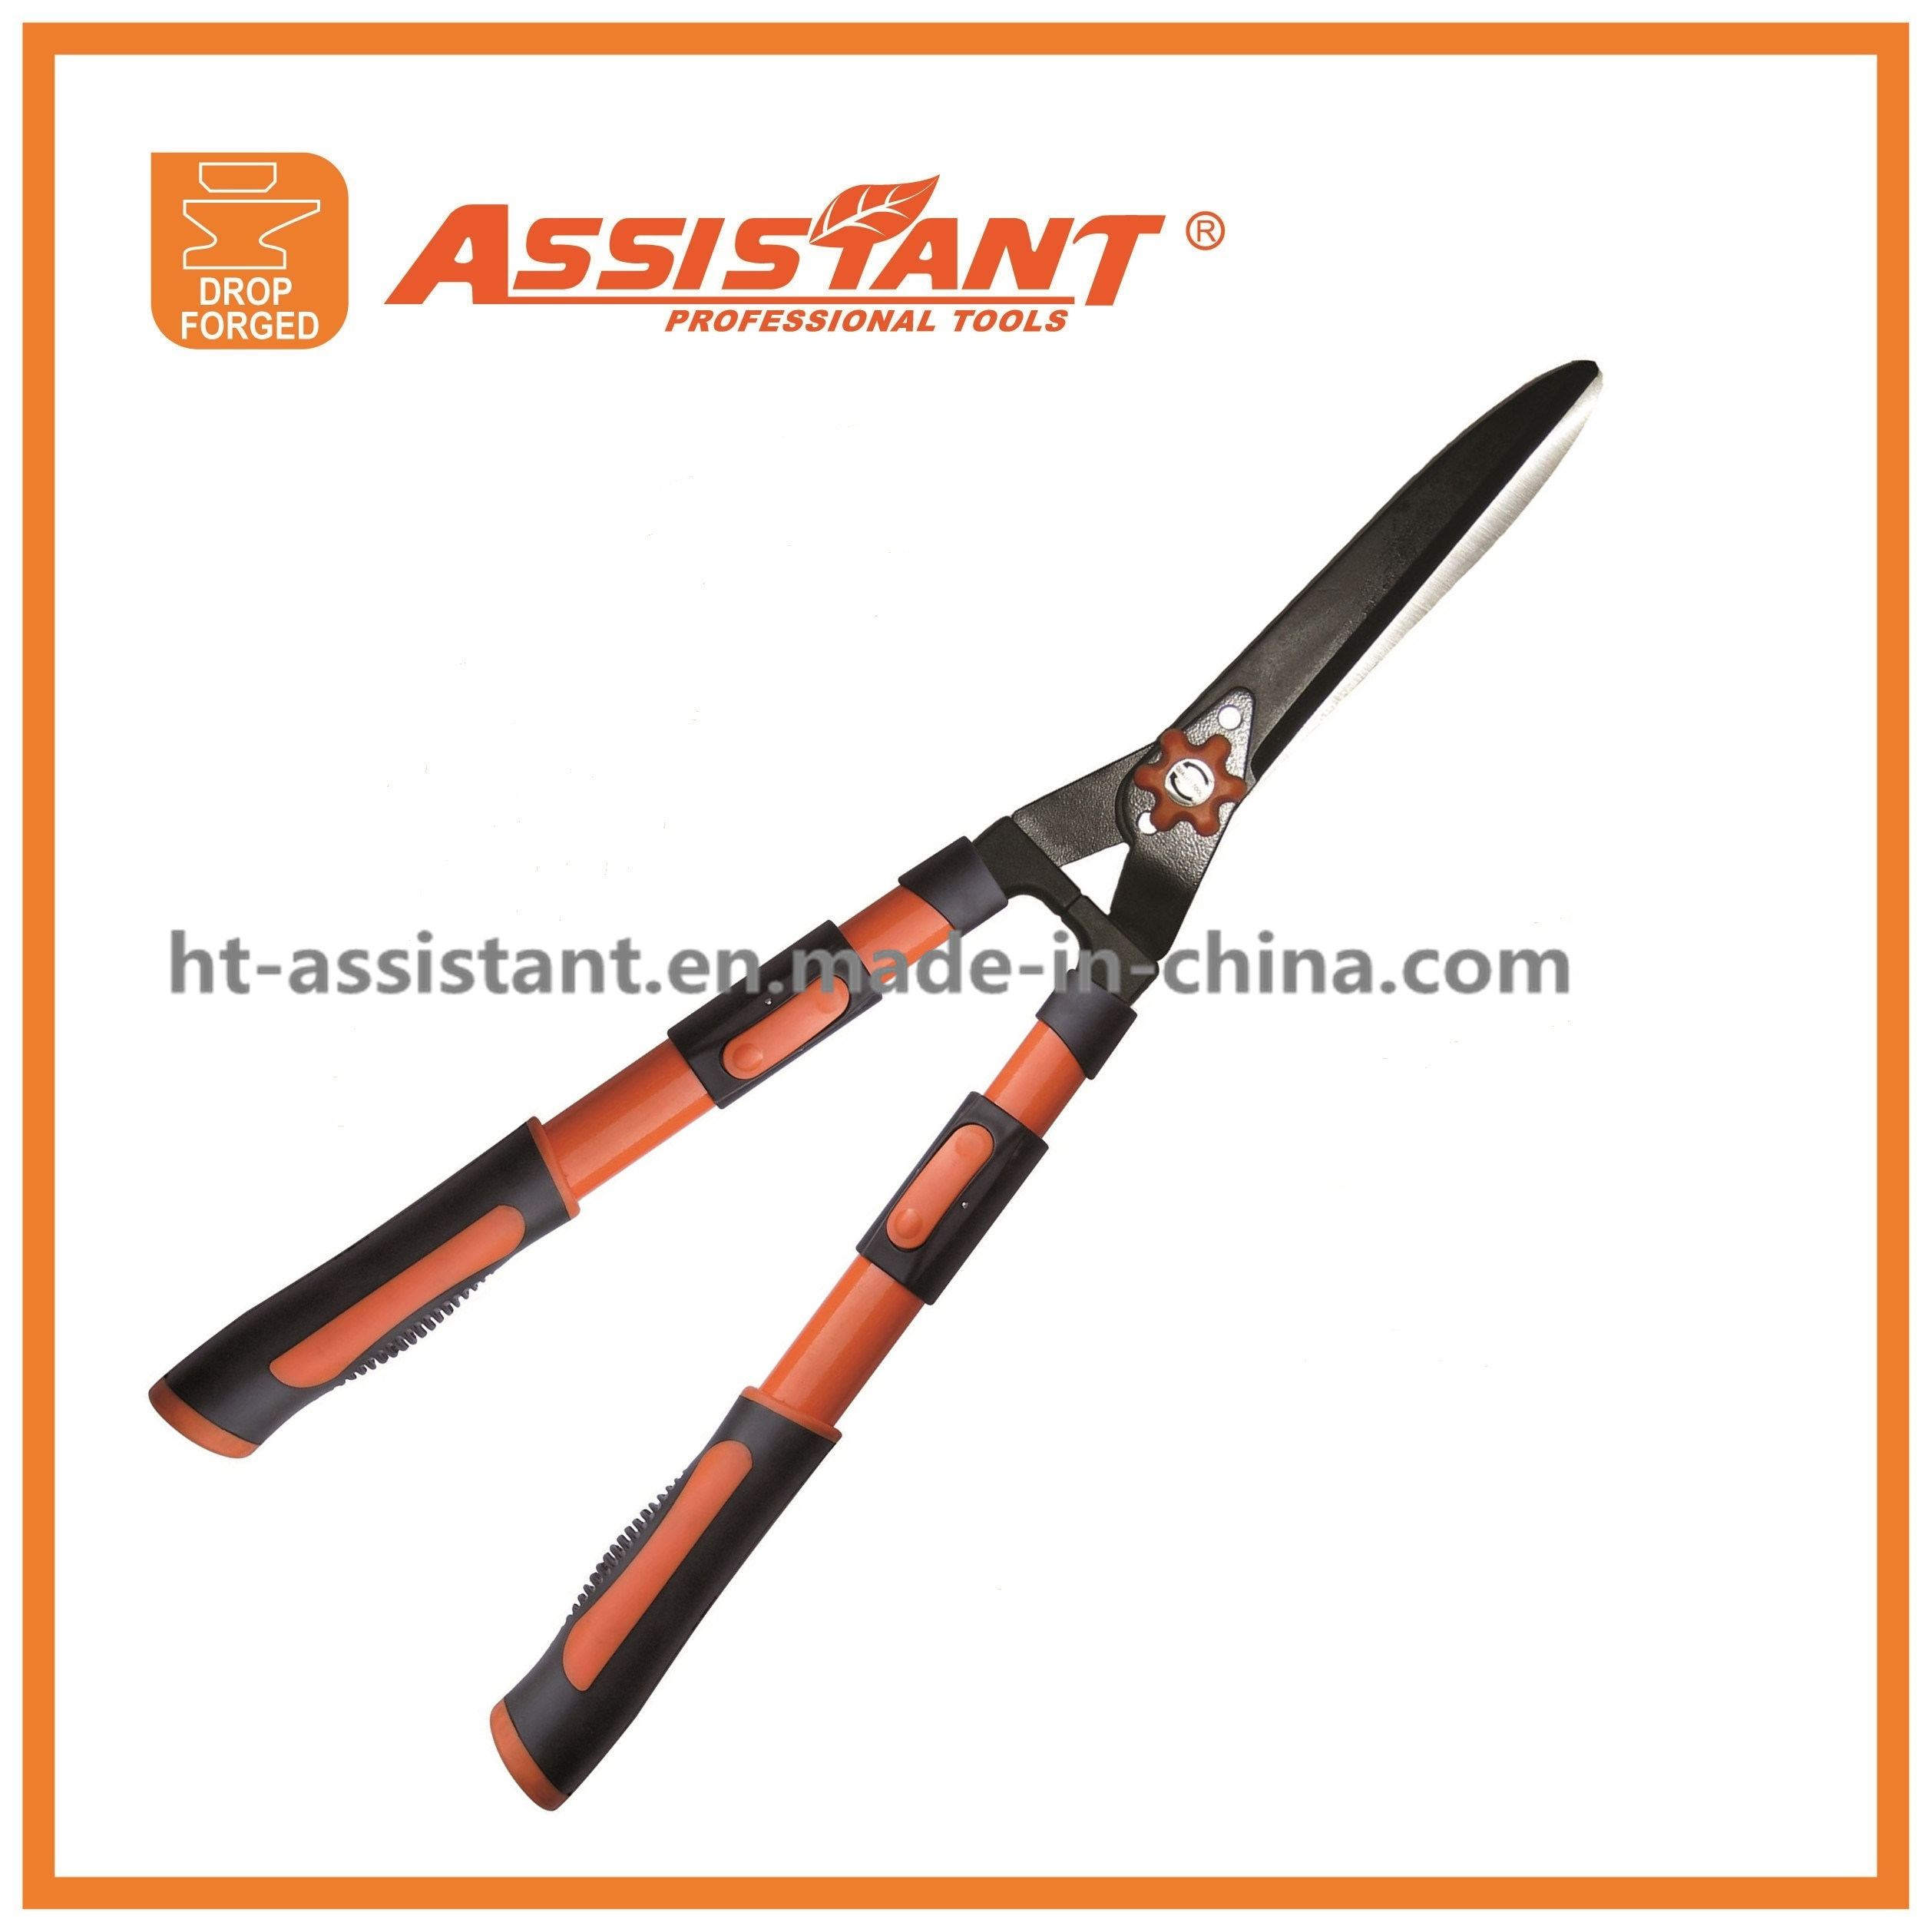 Tension Adjuster Teflon Coated Straight Hedge Shears with Extendable Handles